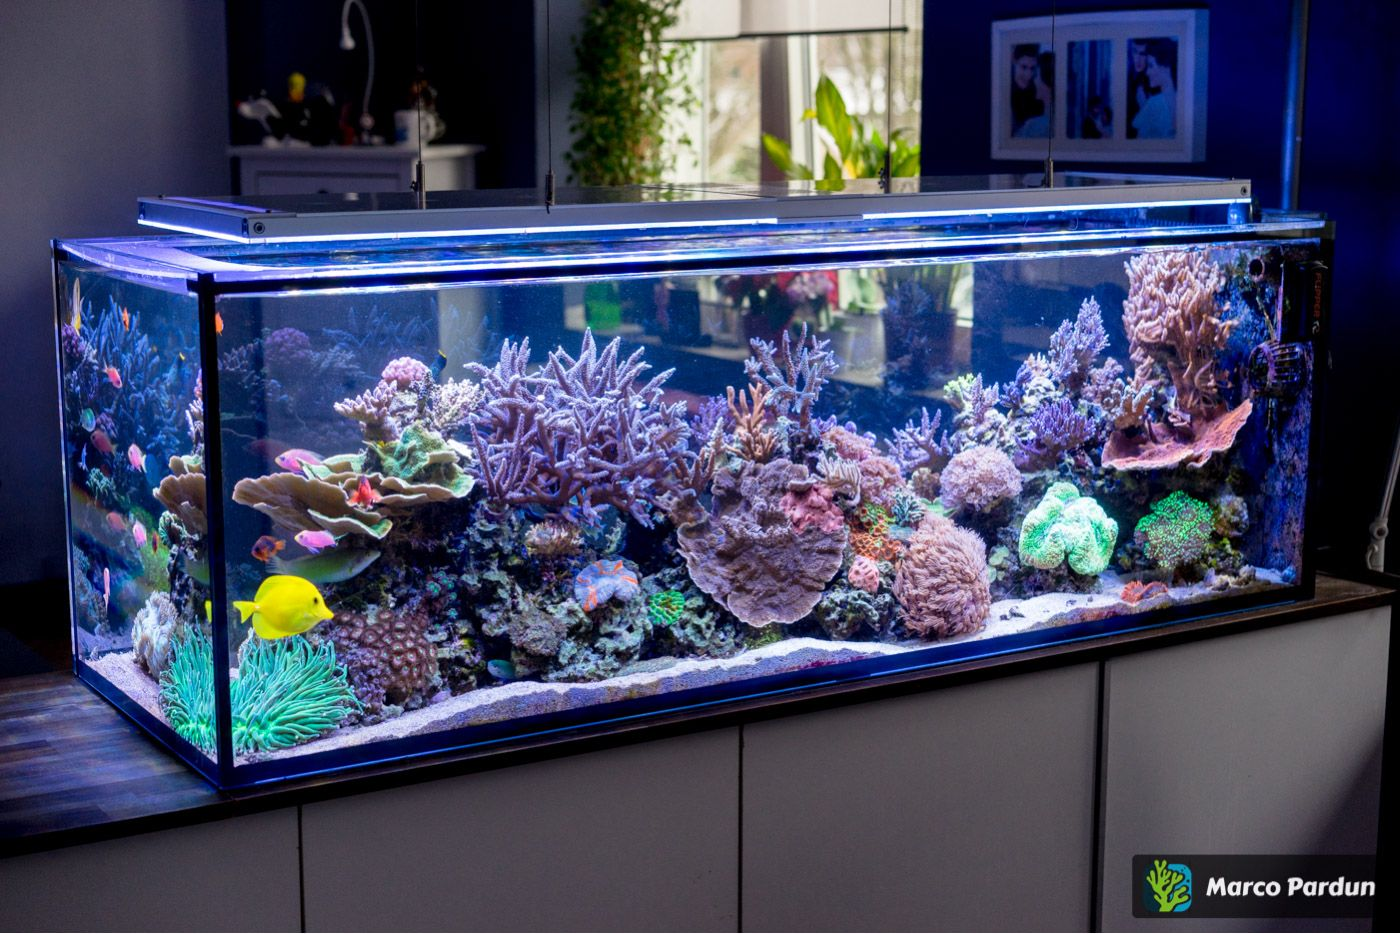 die besten 25 aquarium raumteiler ideen auf pinterest aquarium mit st nder tankst nder und. Black Bedroom Furniture Sets. Home Design Ideas